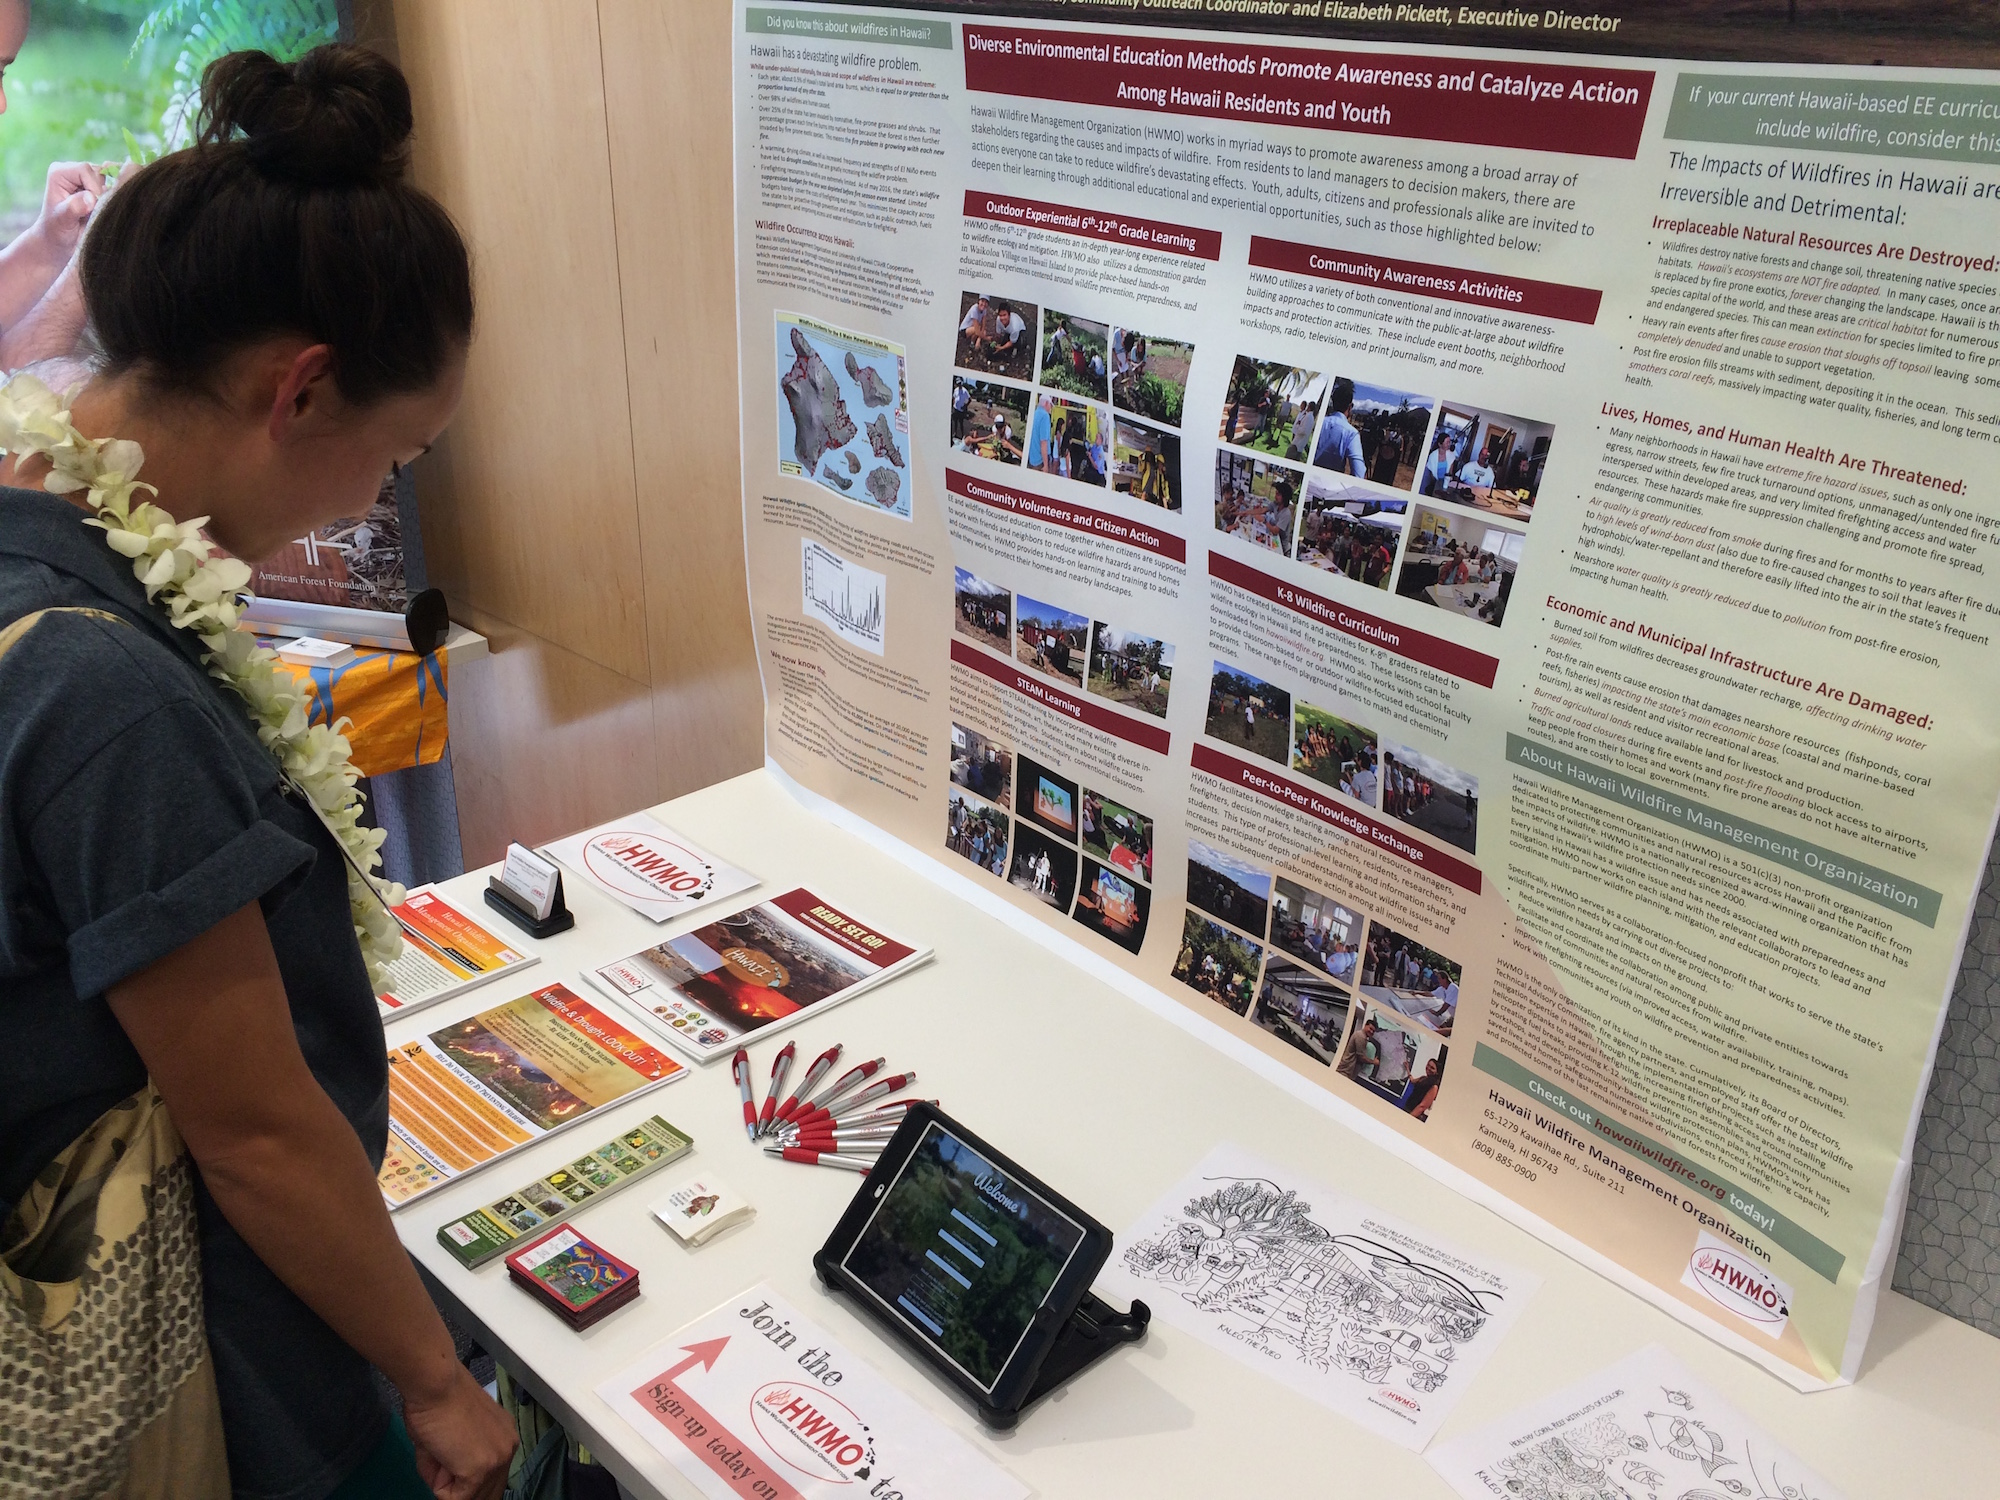 HWMO's information booth was a hub for wildfire curricula information.